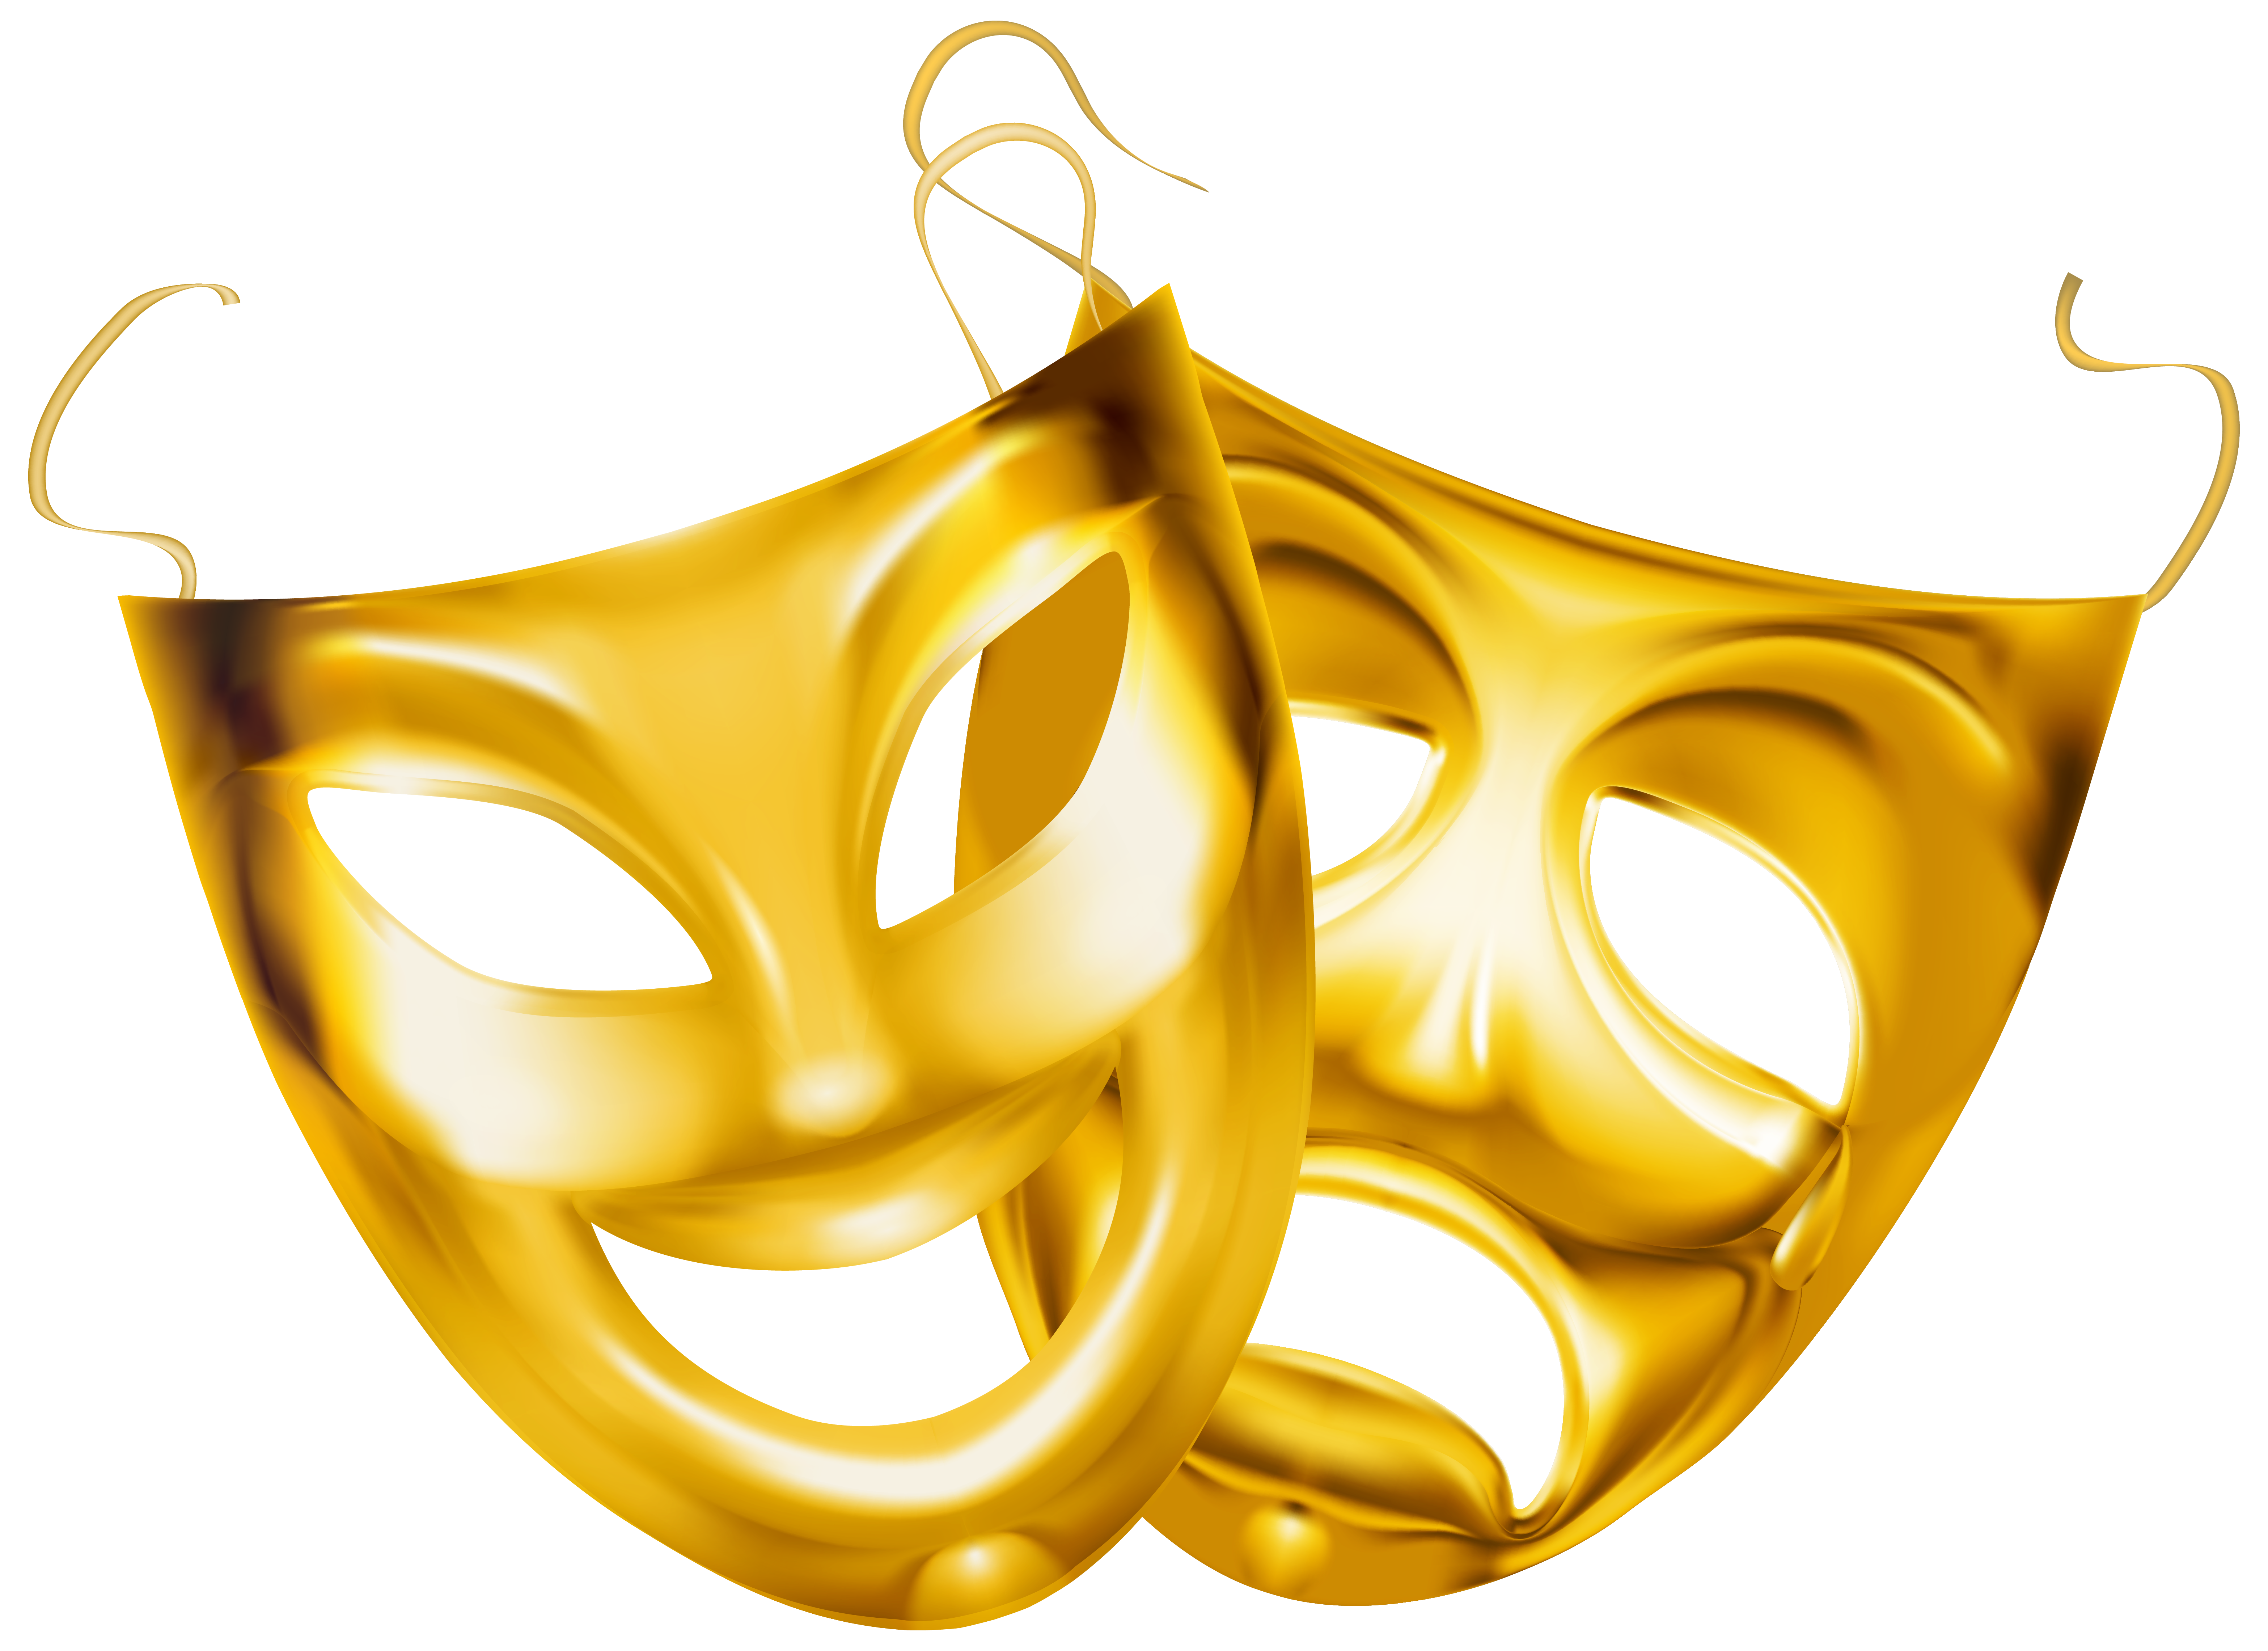 clip art royalty free stock Masquerade clipart golden. Gold theater masks png.